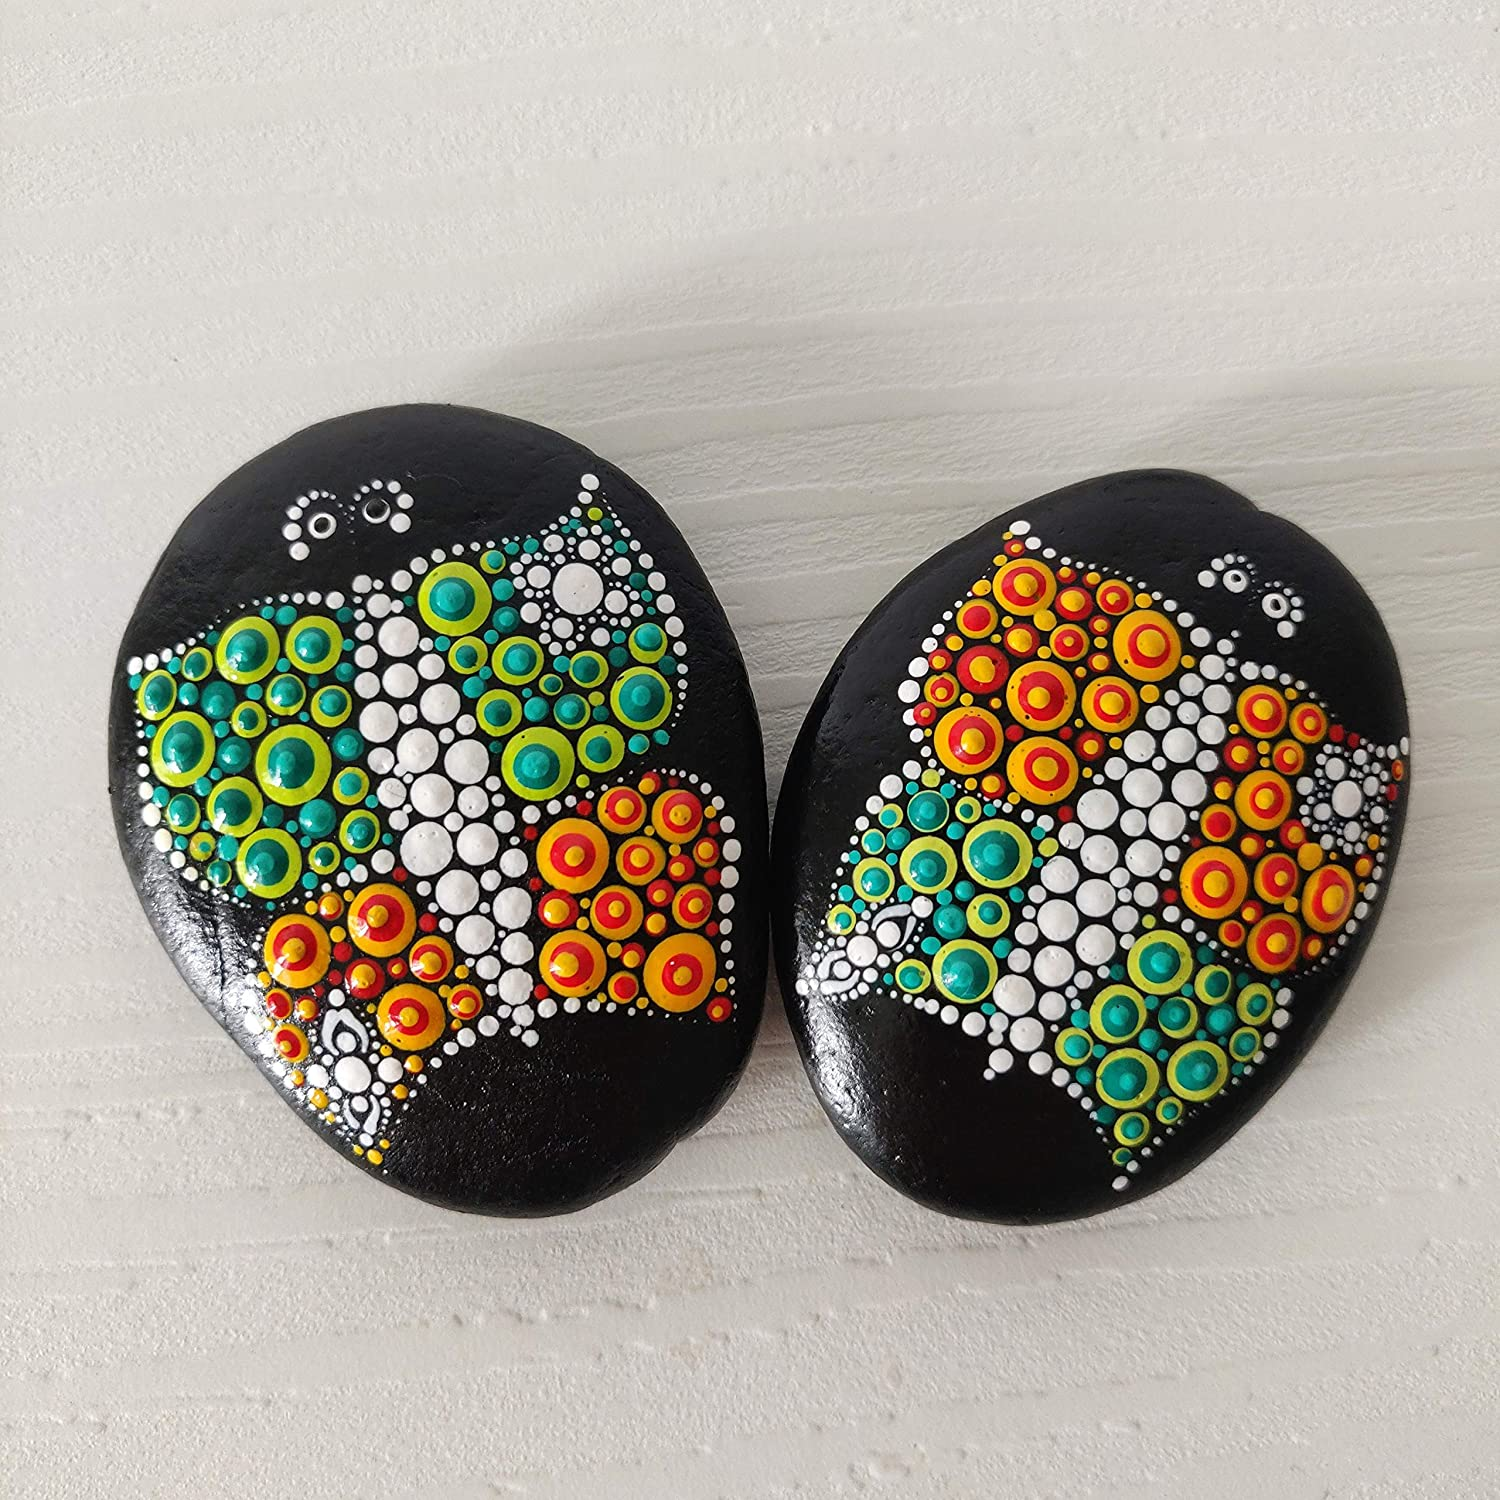 dotart painted butterfly dotilism house butterfly decoration rocks garden rocks Painted rocks Butterfly on a Stone butterfly lovers gift